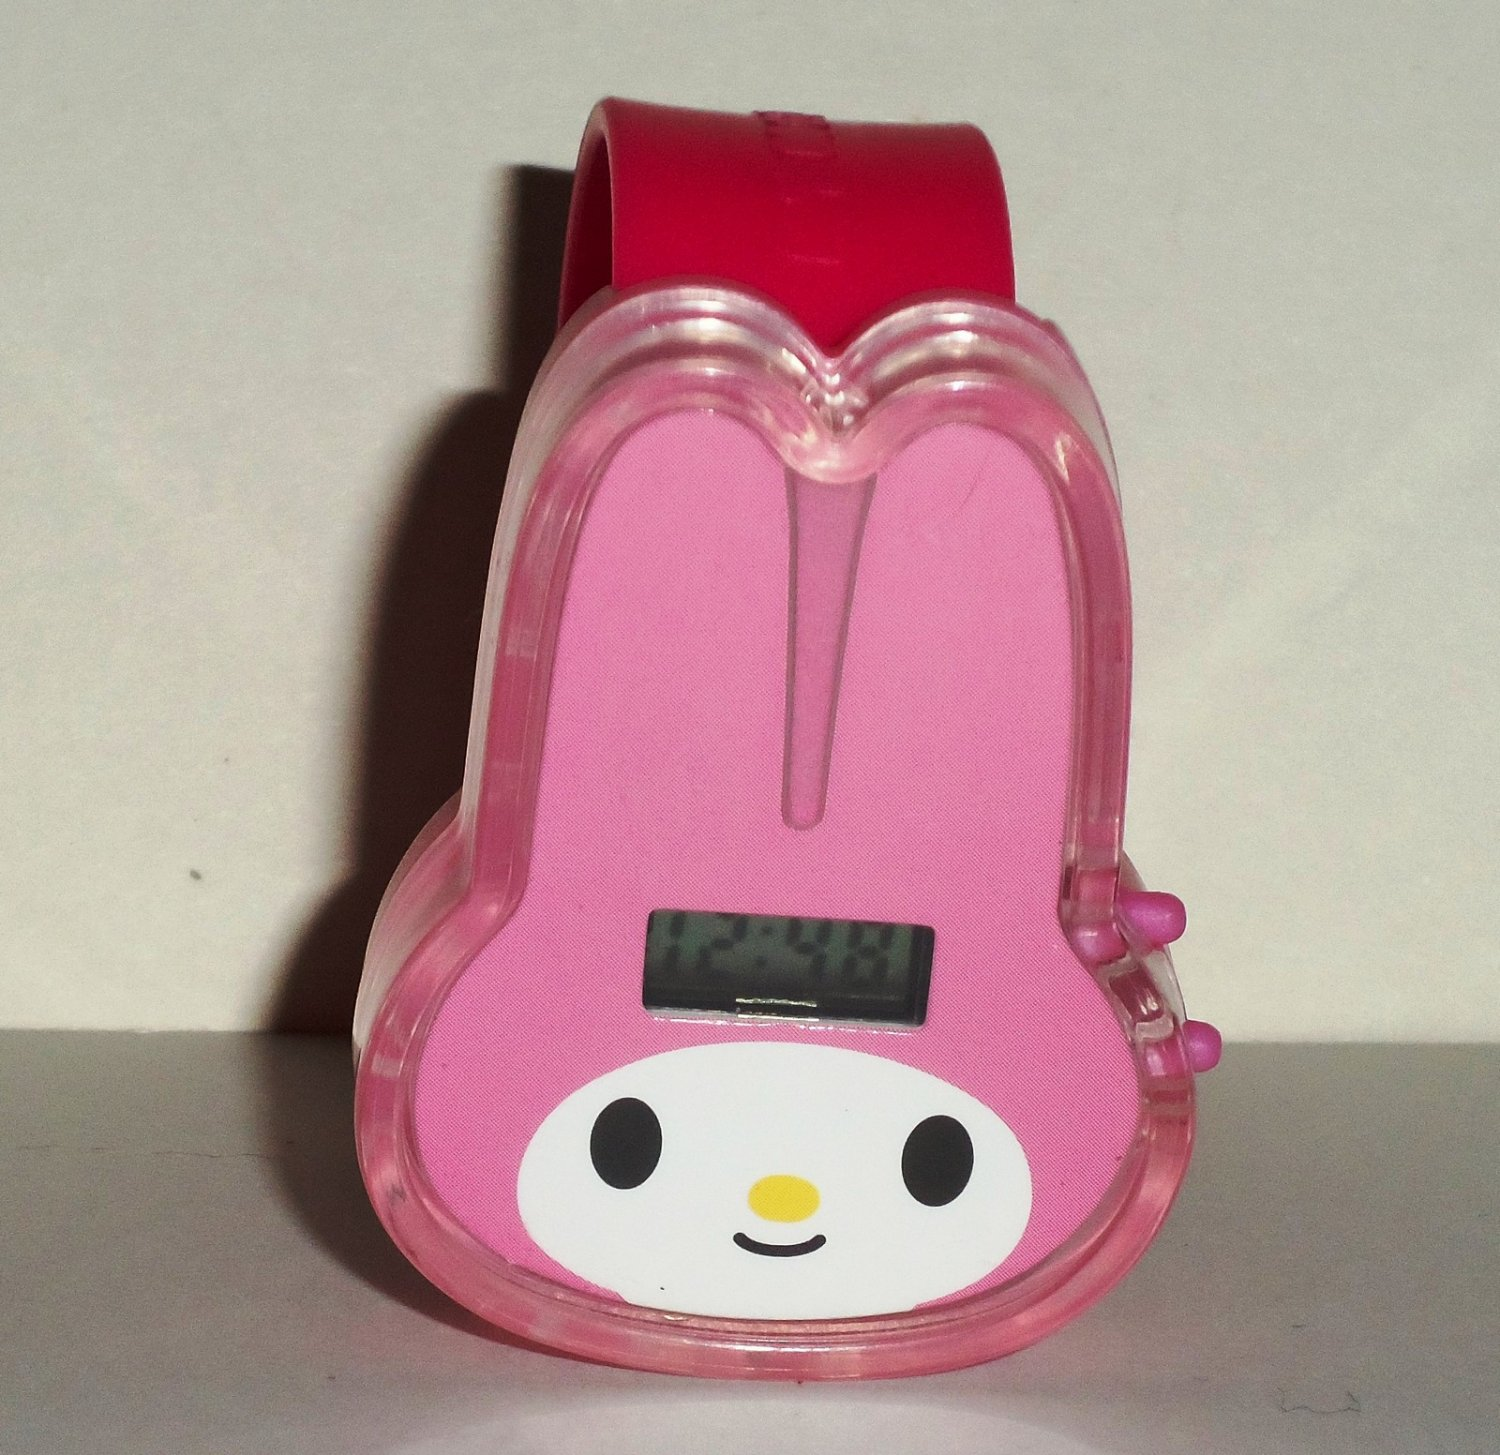 Toy Hello Kitty Watch : Mcdonald s hello kitty my melody watch happy meal toy